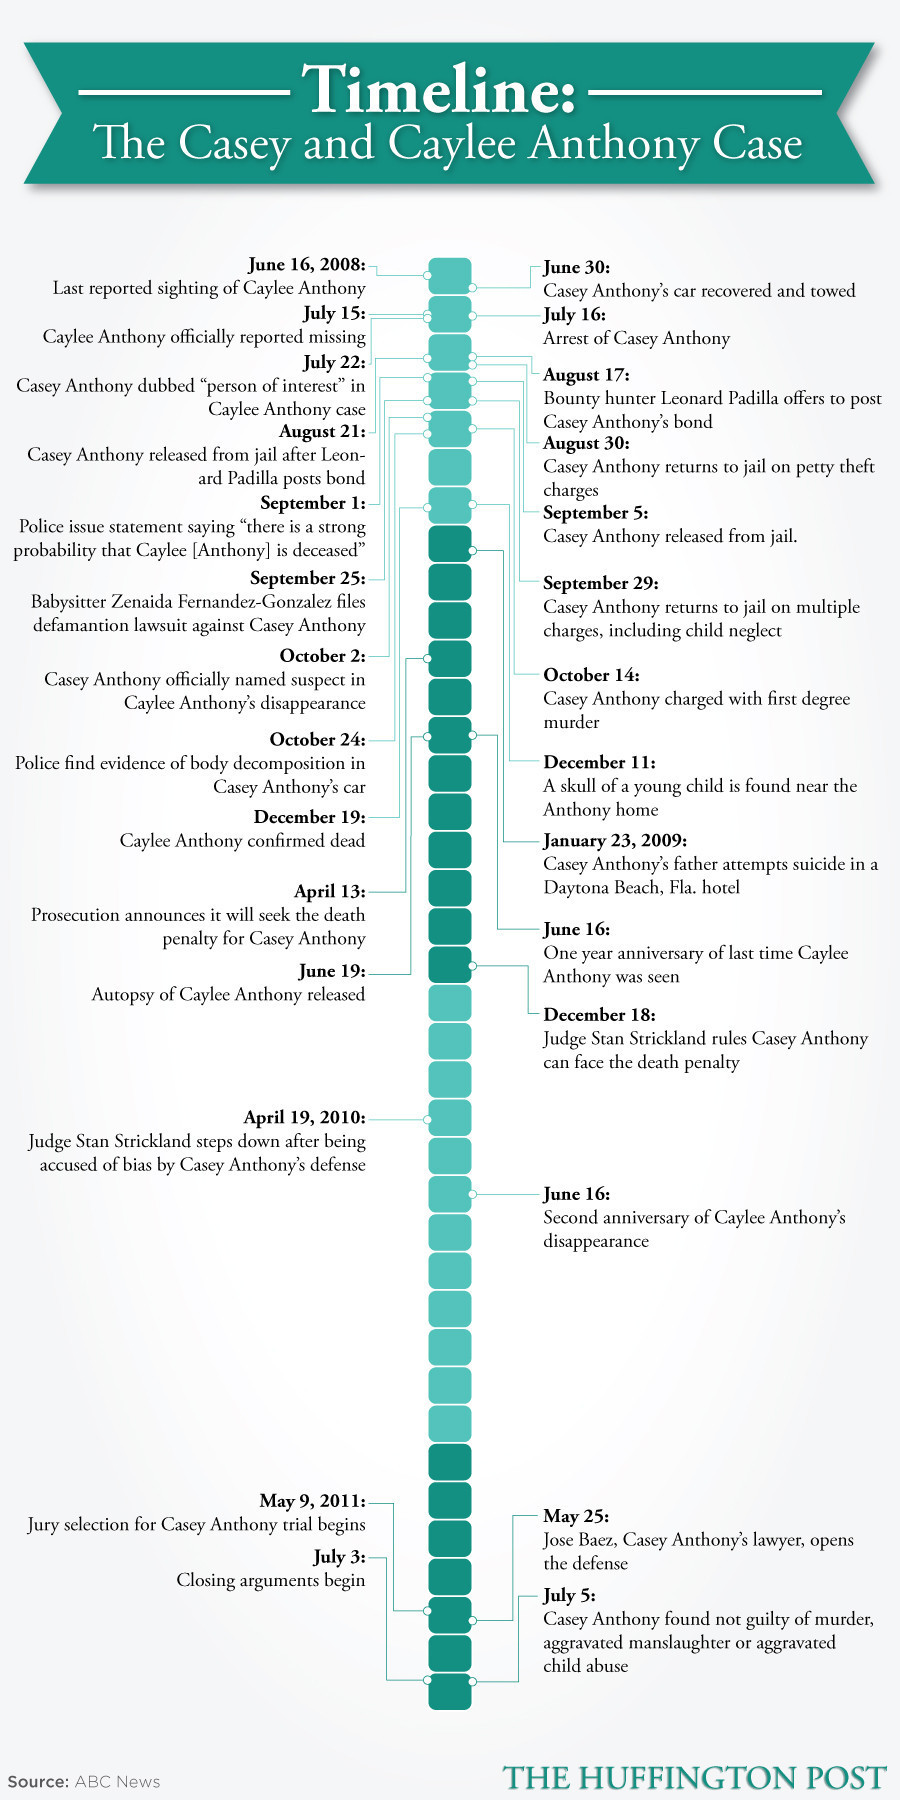 casey anthony time line Detailing from caylee anthony's disappearance to casey anthony's jail sentence on other charges that poor girl never had a chance to experience t.